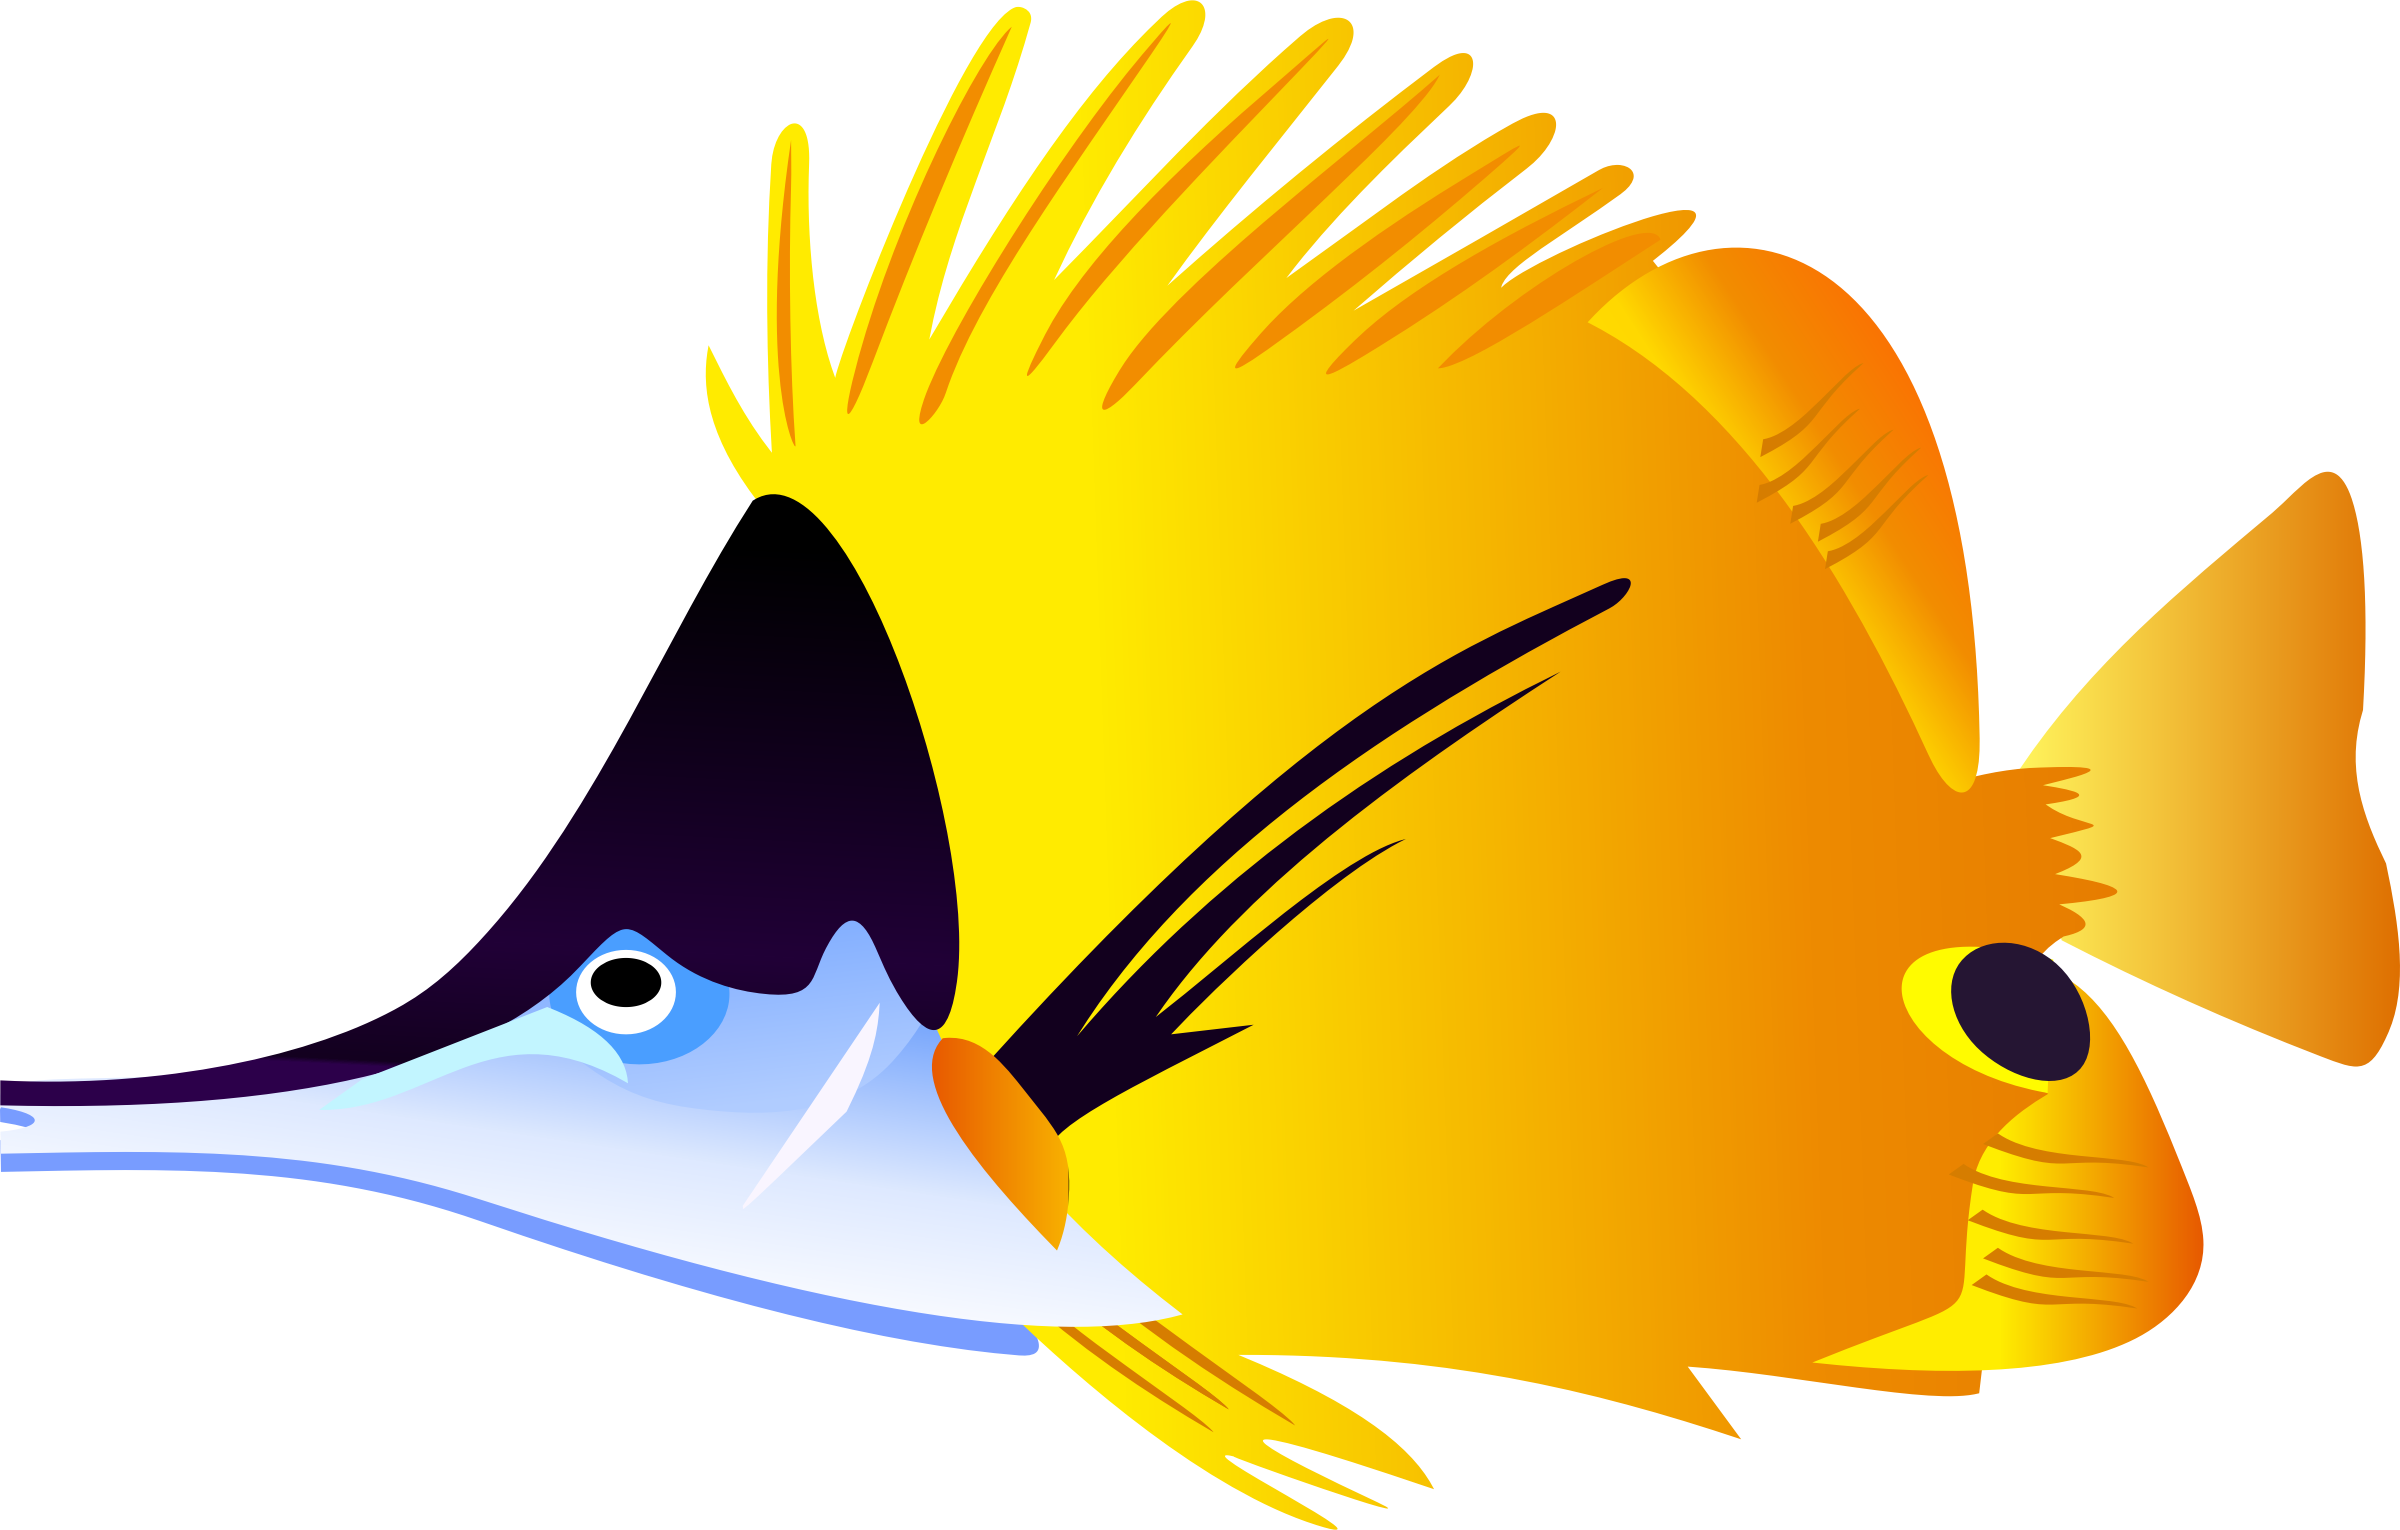 Coral reef fish clipart printable image transparent library Saltwater Fish Clipart at GetDrawings.com | Free for personal use ... image transparent library